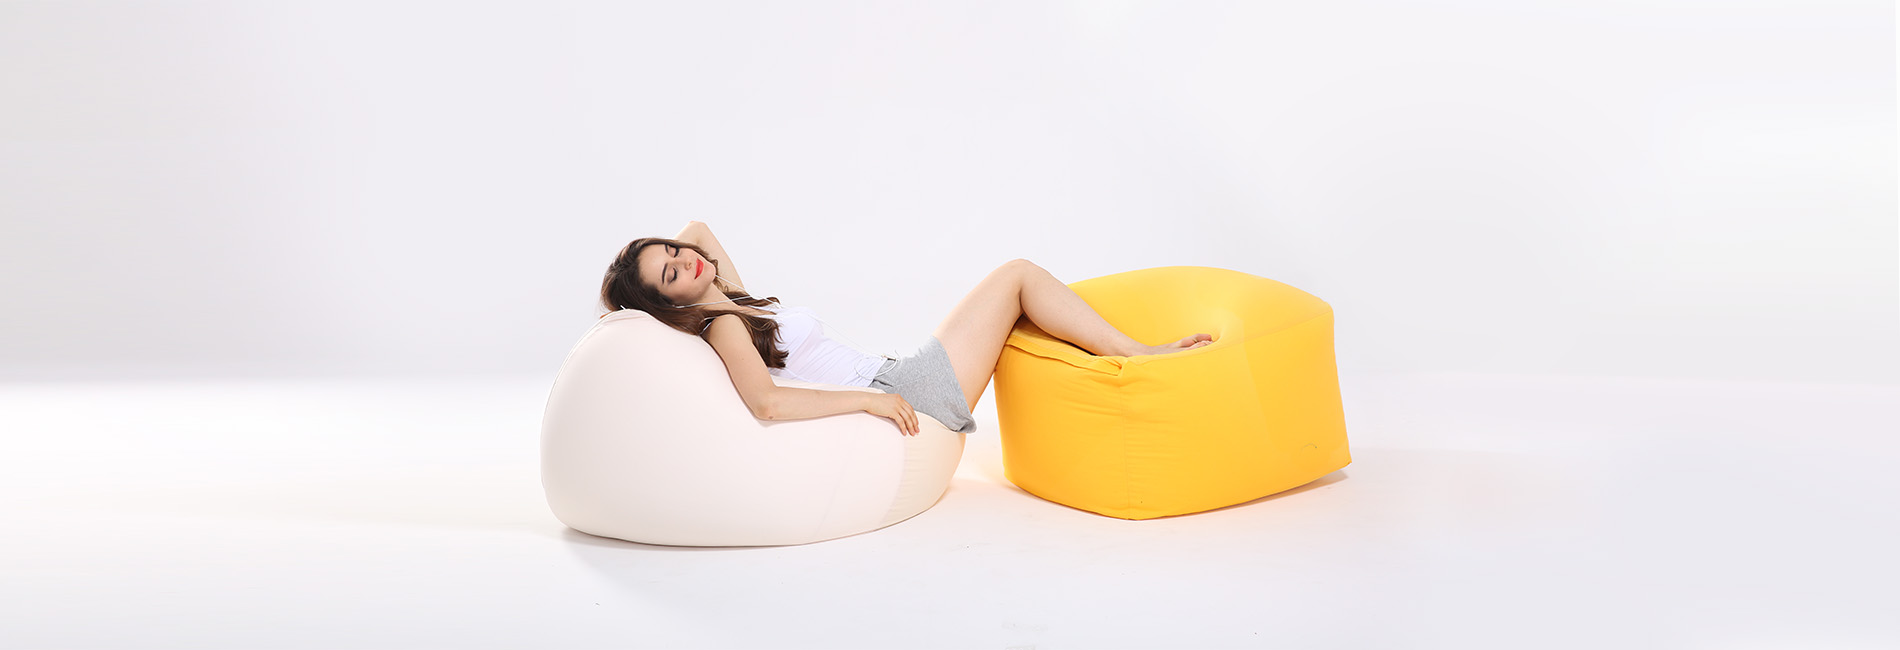 Basketball Bean Bag Chair Yiwu Visi Lifestyle Co Ltd Yiwu Visi Lifestyle Co Ltd